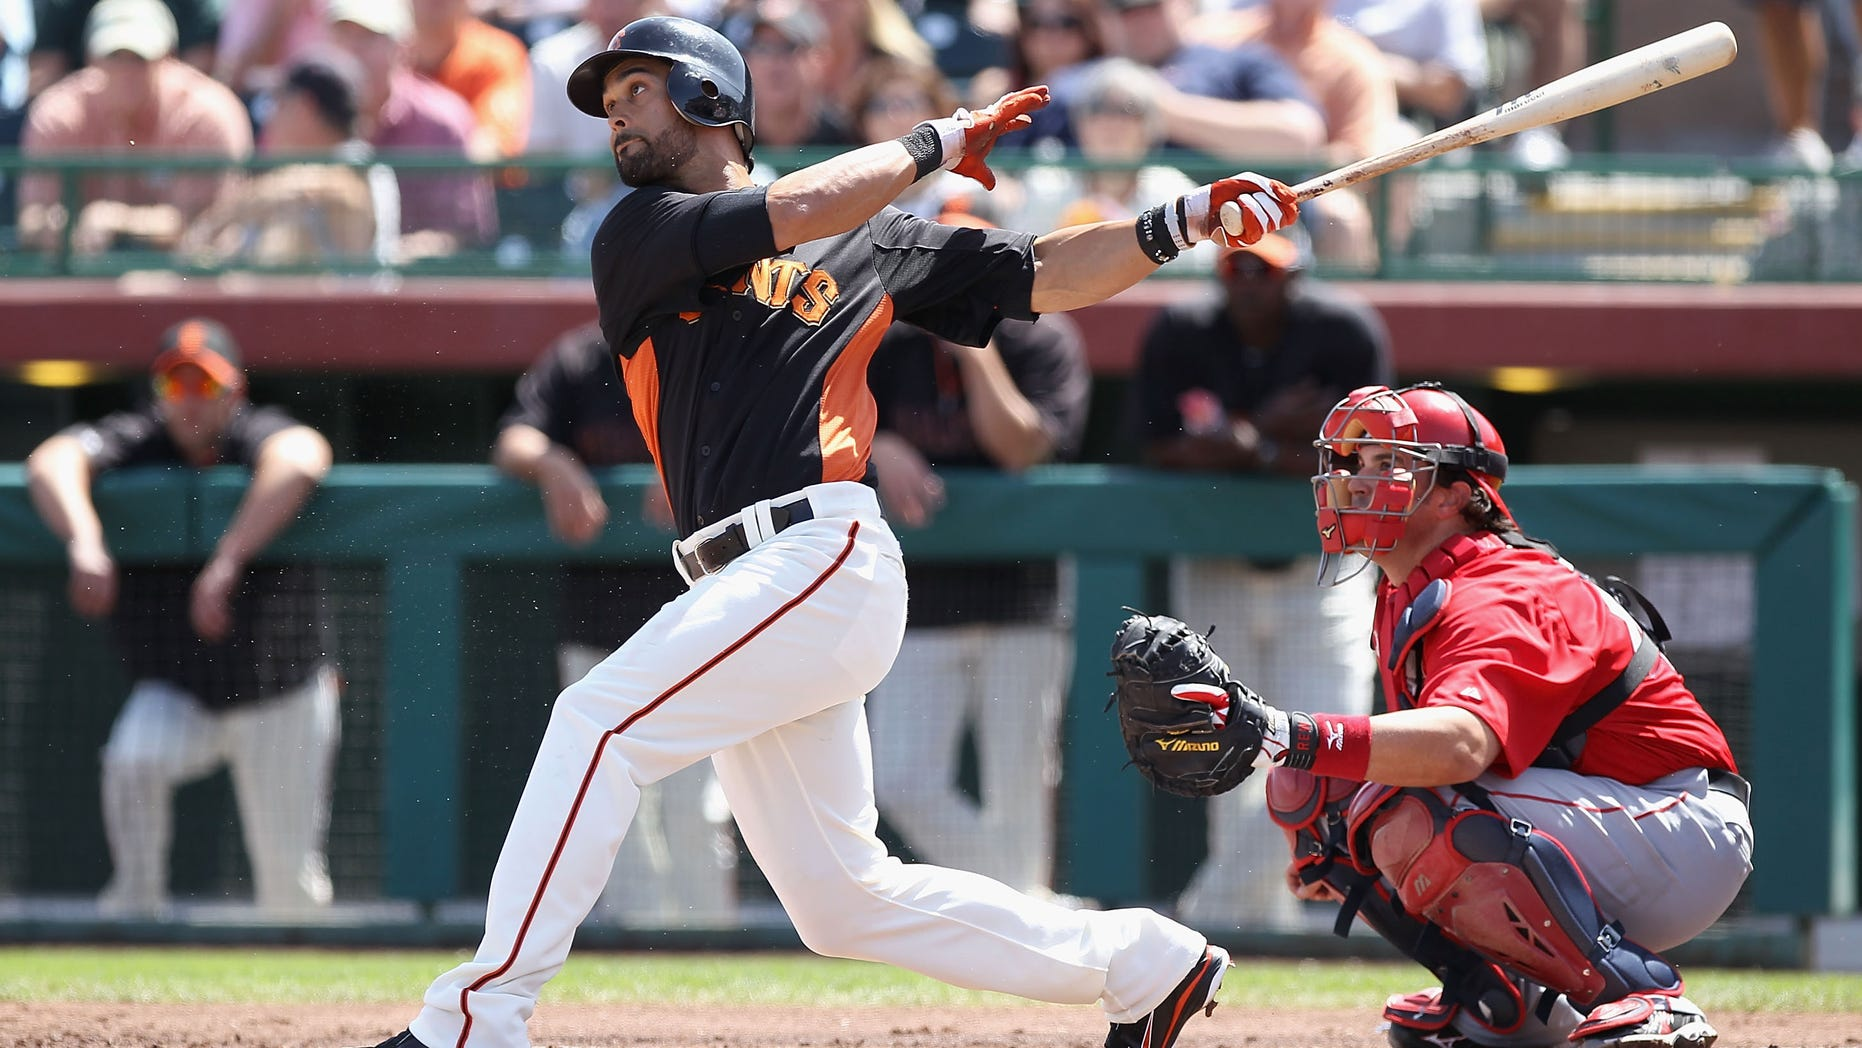 Angel Pagan #16 of the San Francisco Giants (Photo by Christian Petersen/Getty Images)